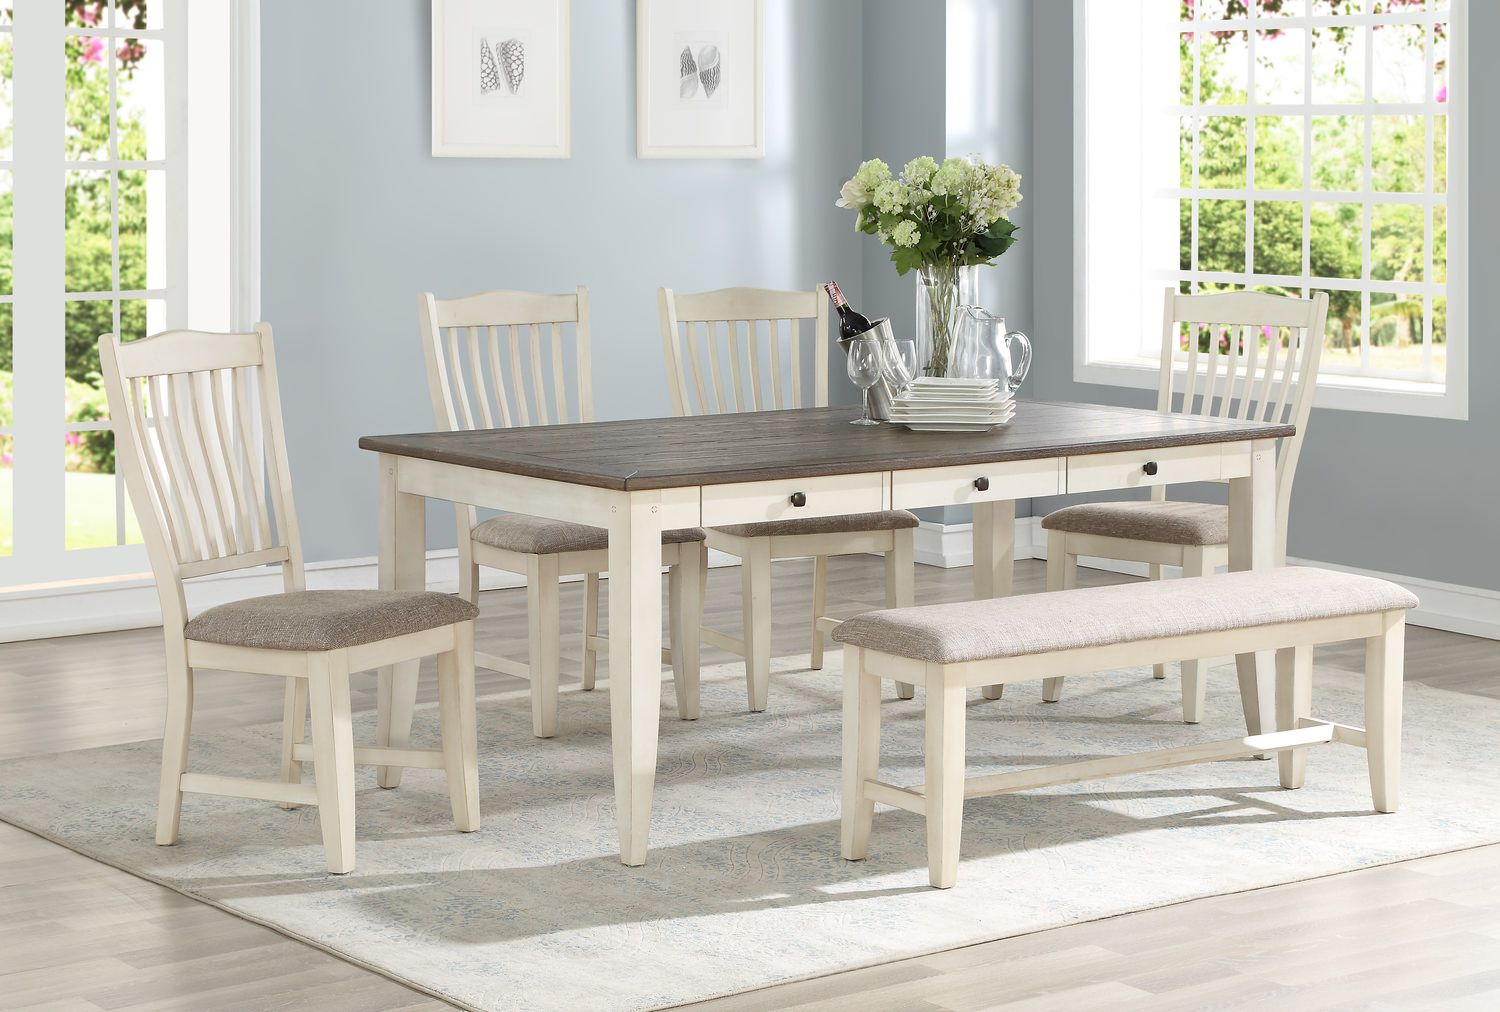 Columbia Leg Table With 4 Chairs And Dining Hom Furniture